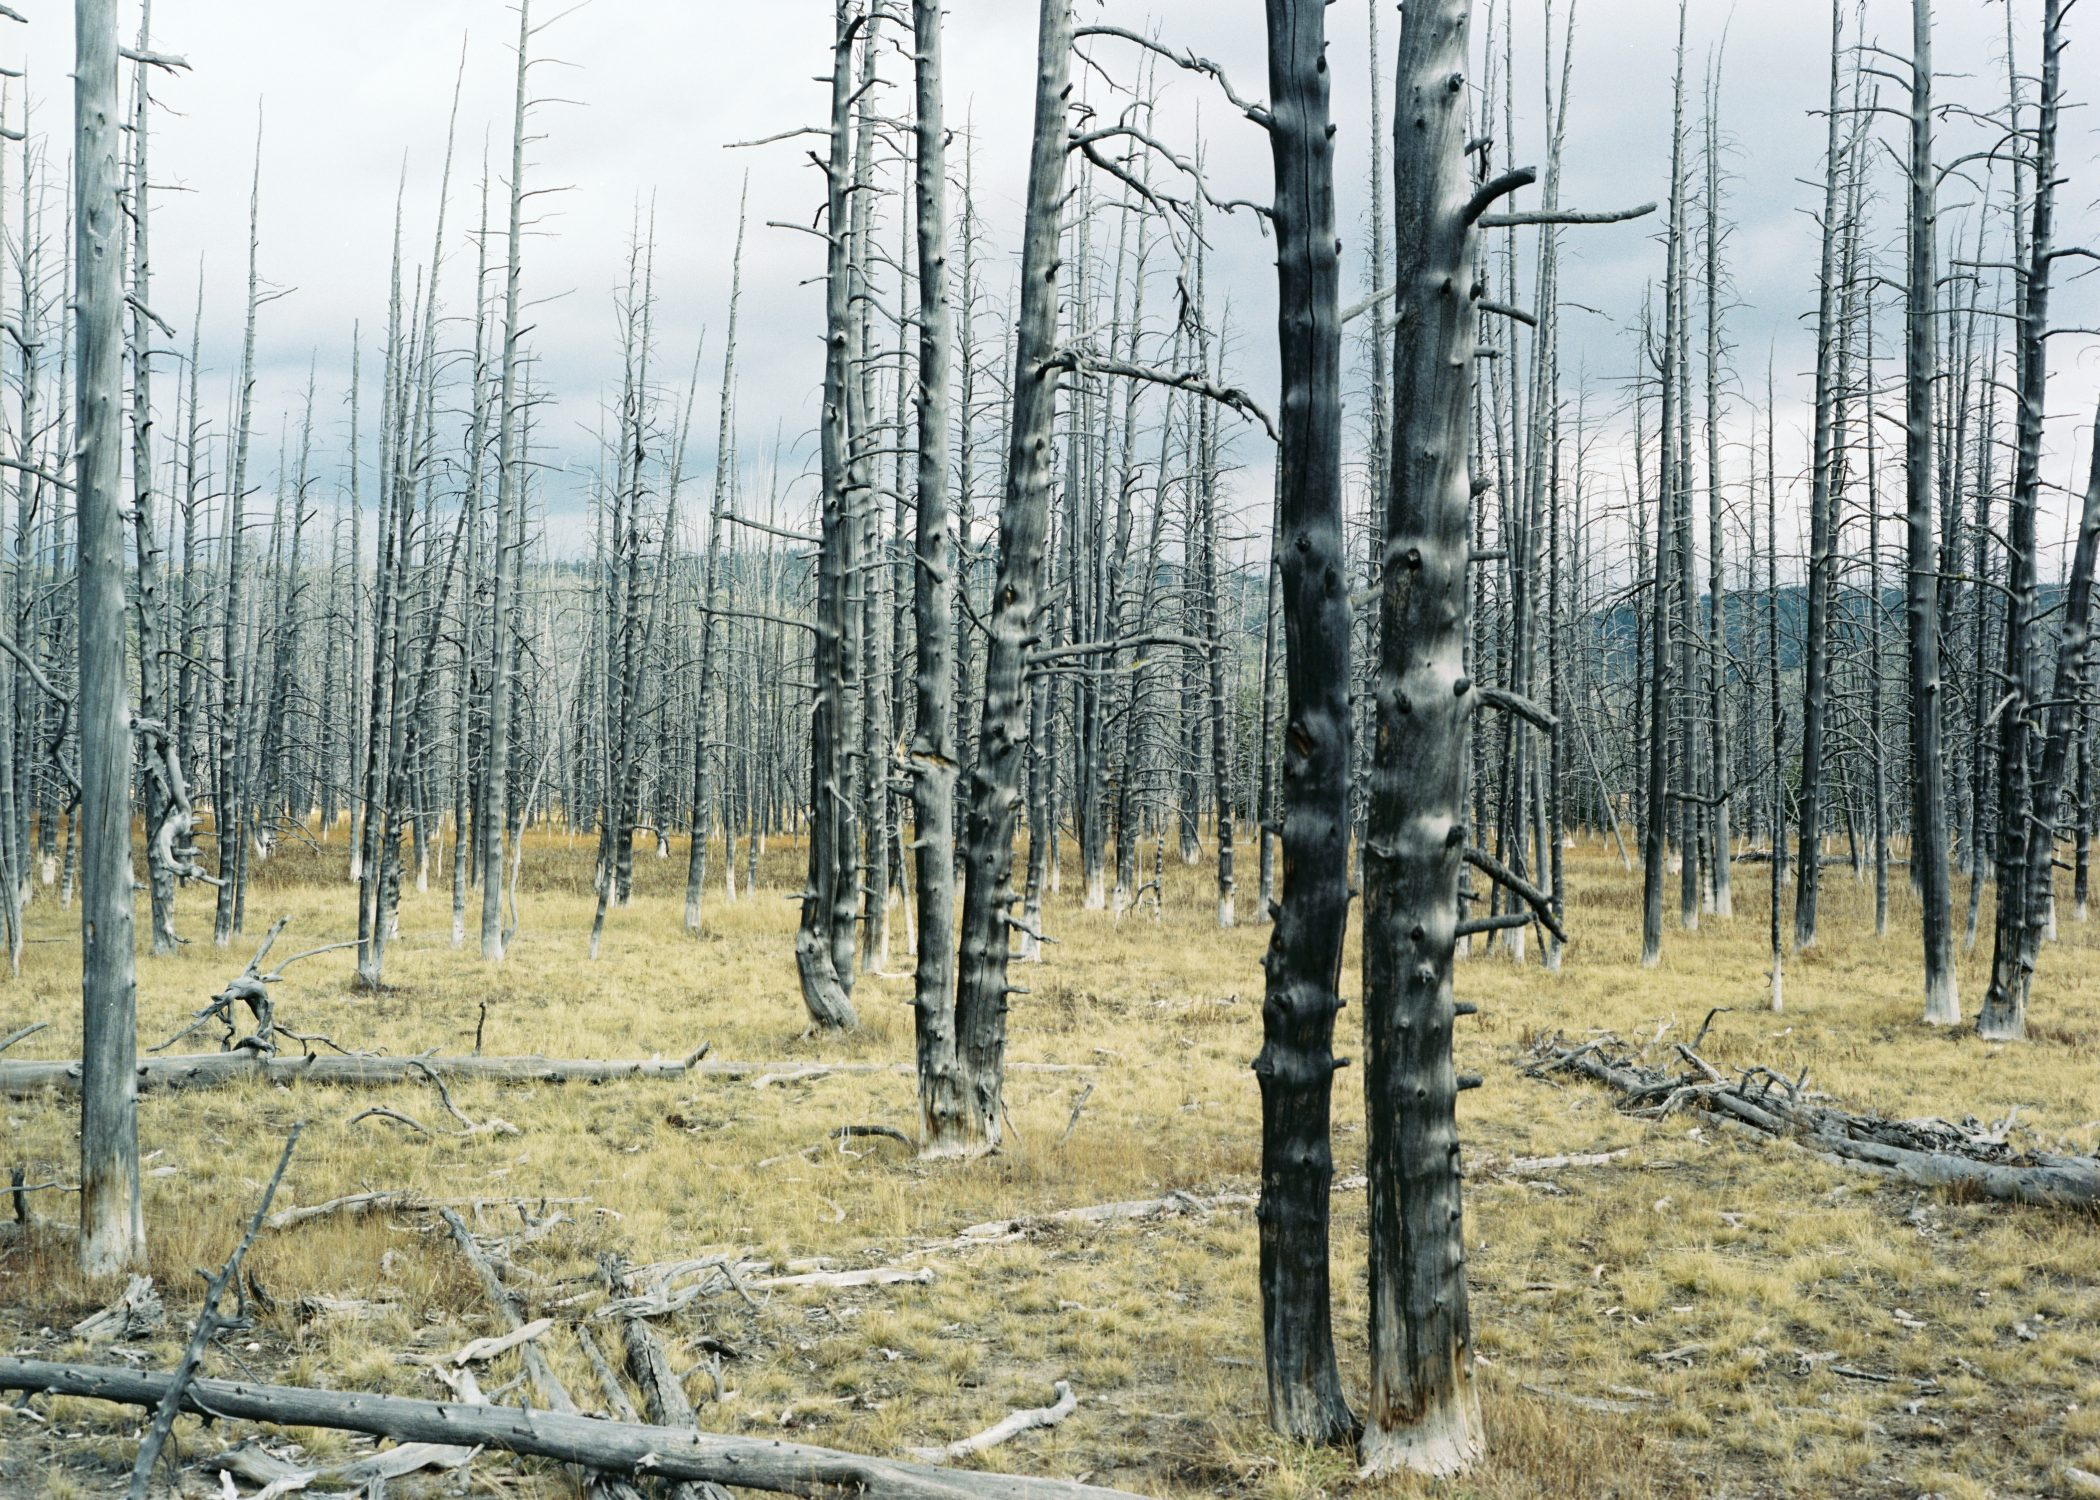 Forest Fire Yellowstone National Park Wyoming by Catherine Lemble